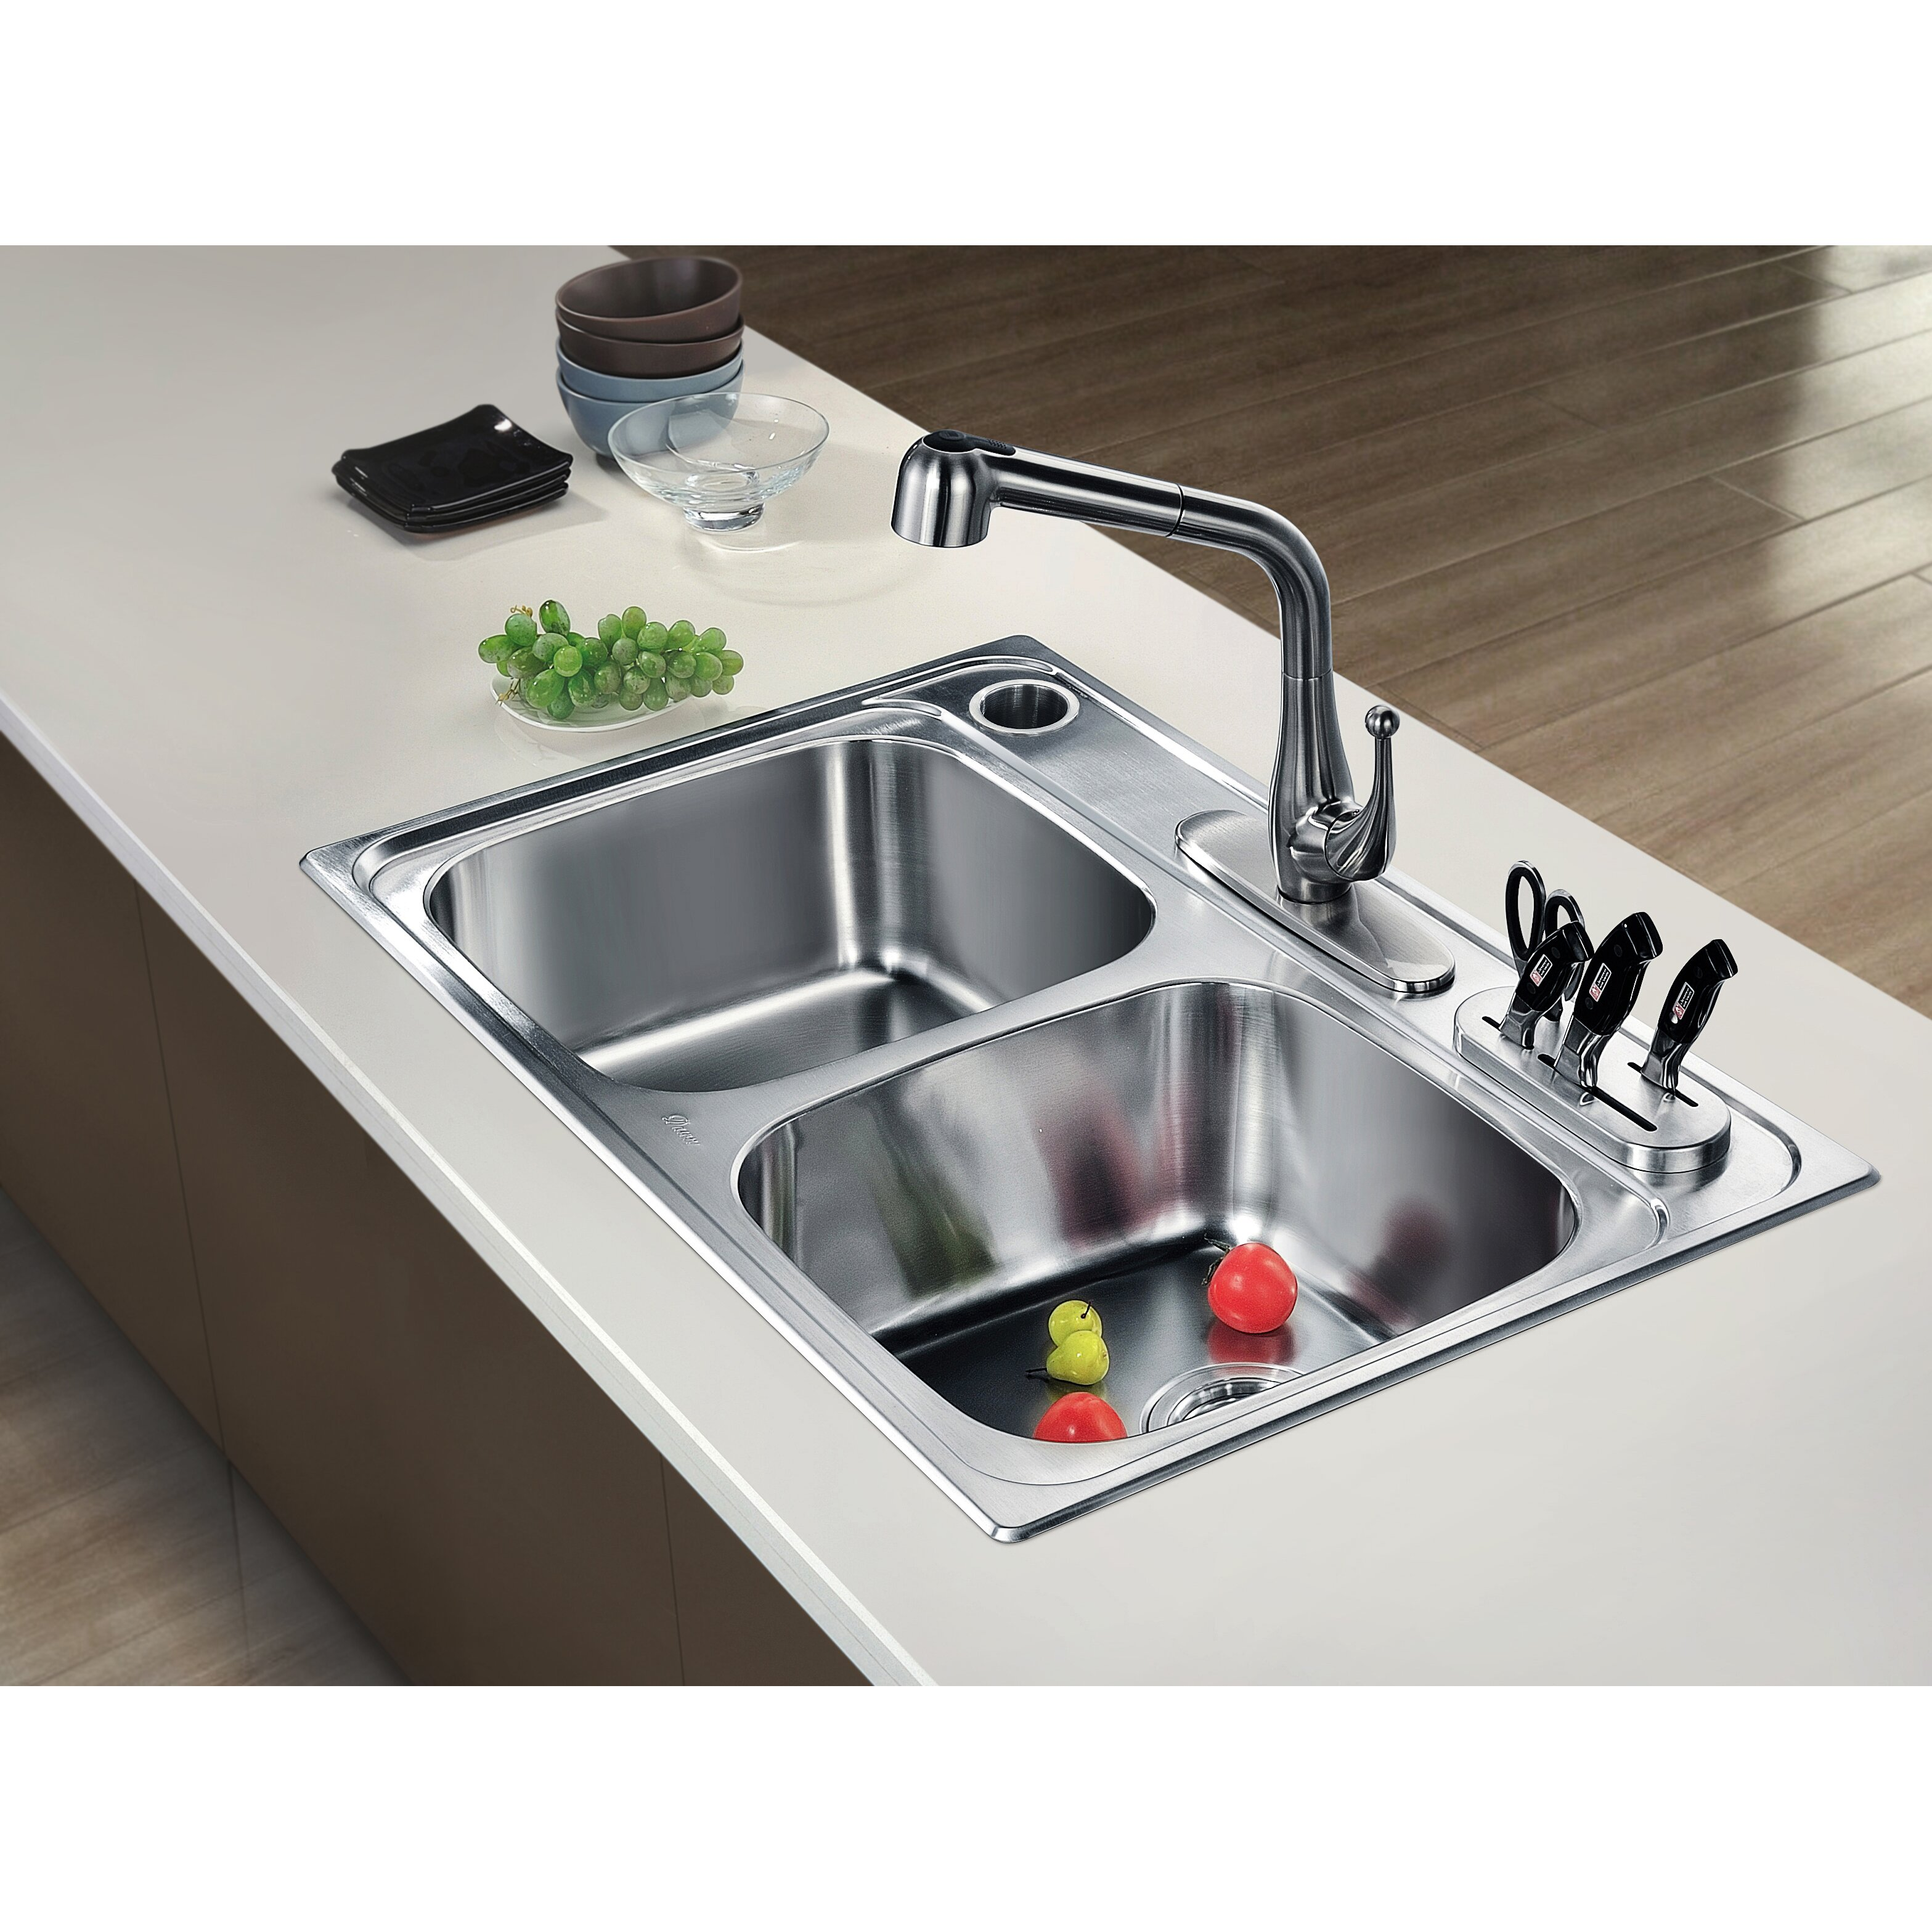 Dawn Kitchen Sink Review